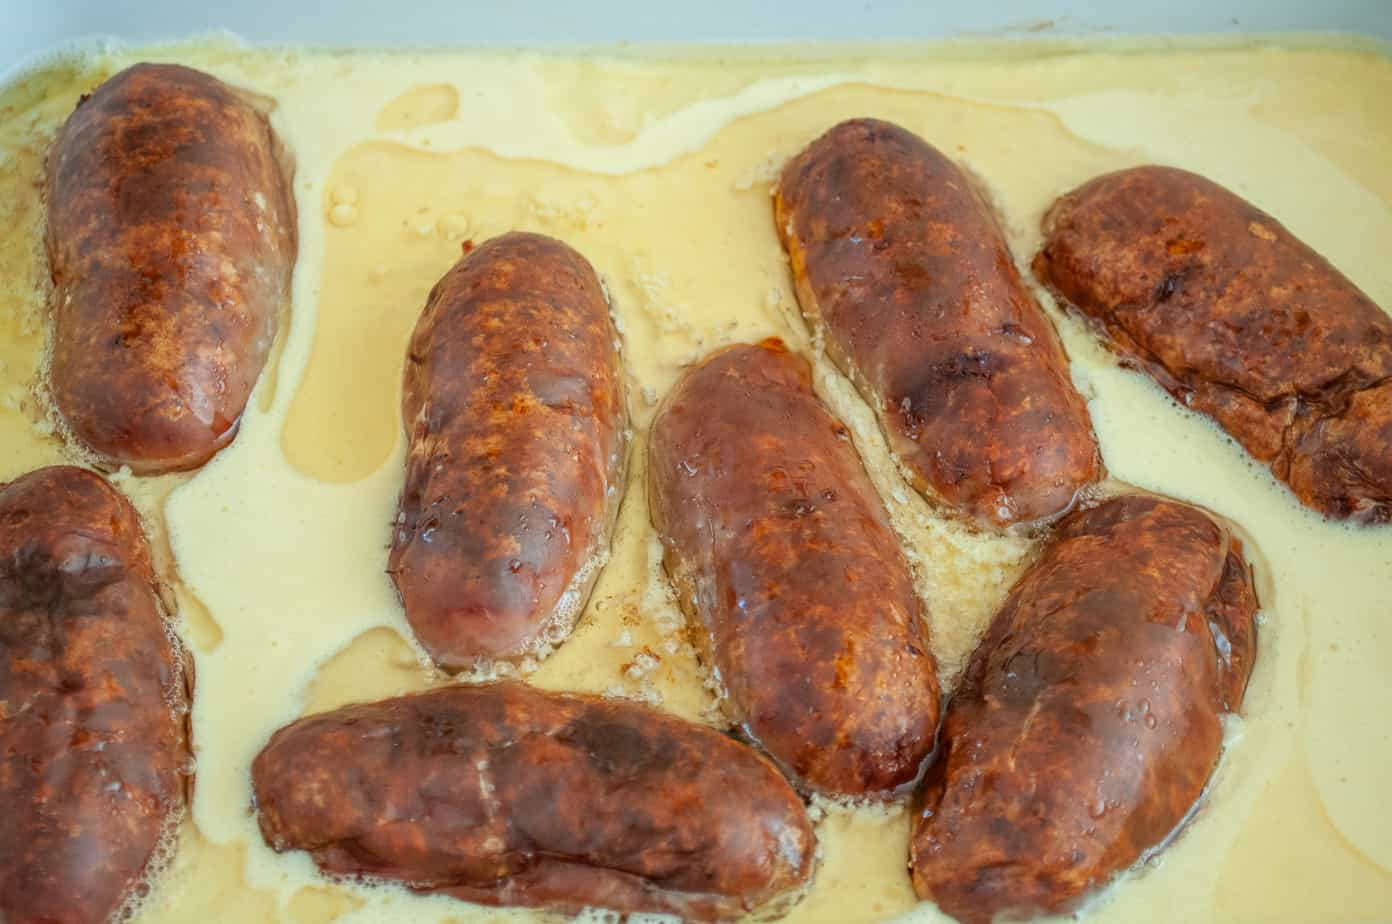 Sausages surrounded by yorkshire pudding batter.